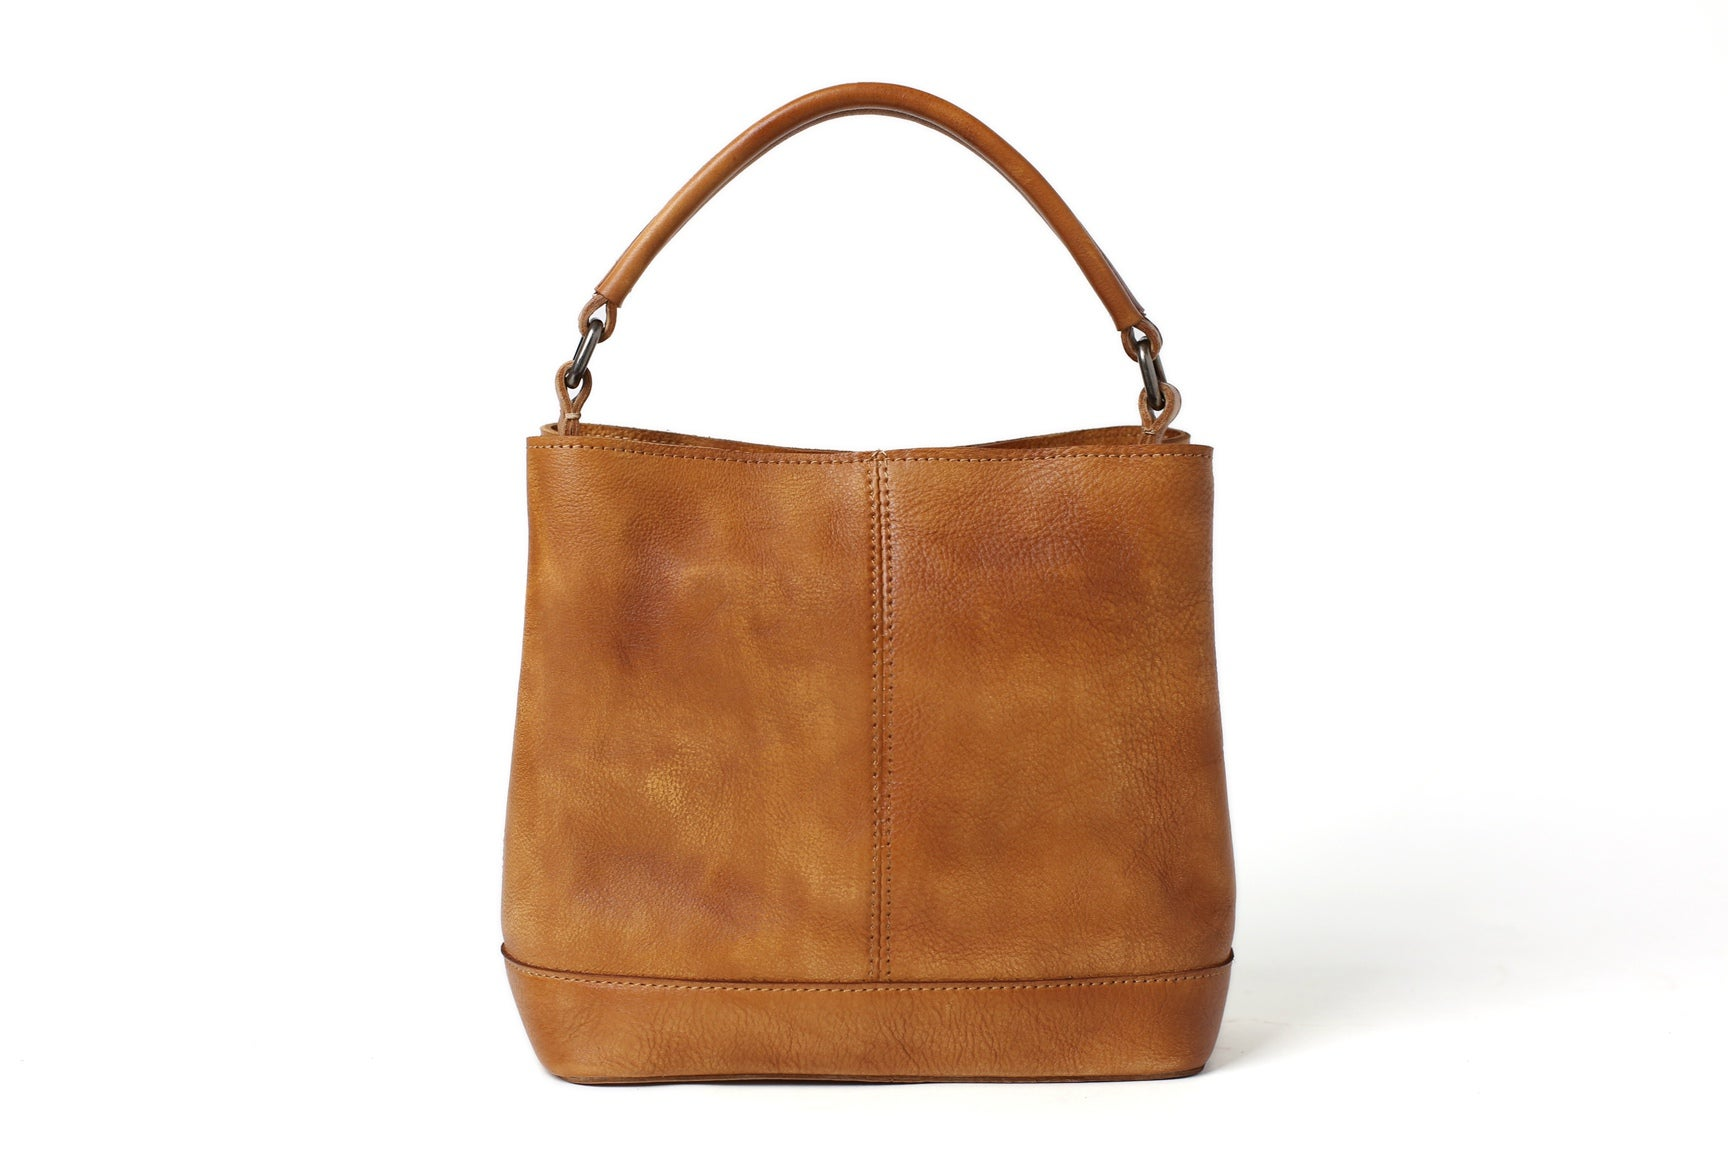 1c91b96886 MoshiLeatherBag - Handmade Leather Bag Manufacturer — Handmade Full Grain  Leather Hobo Bag